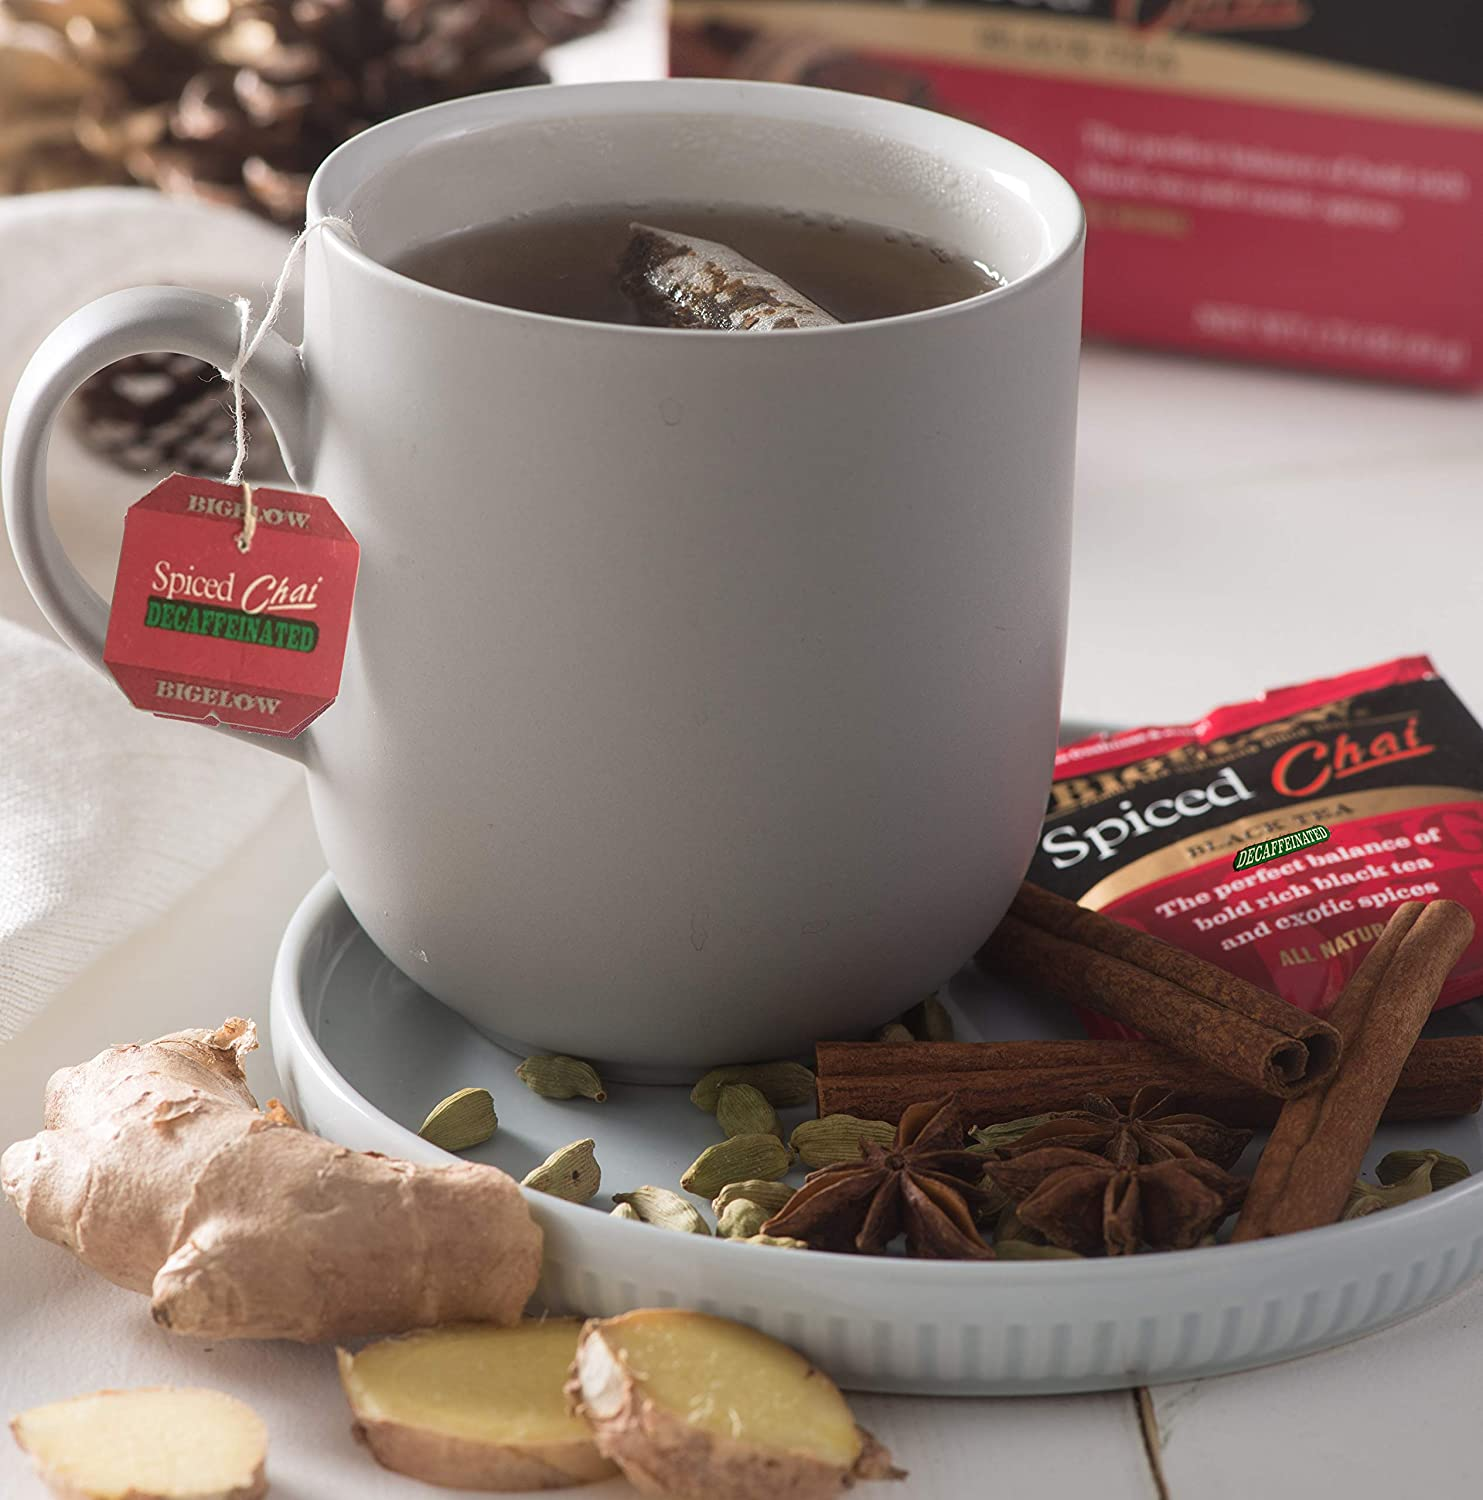 Bigelow Decaffeinated Spiced Chai Tea Boxes, Caffeinated Individual Black Tea Bags